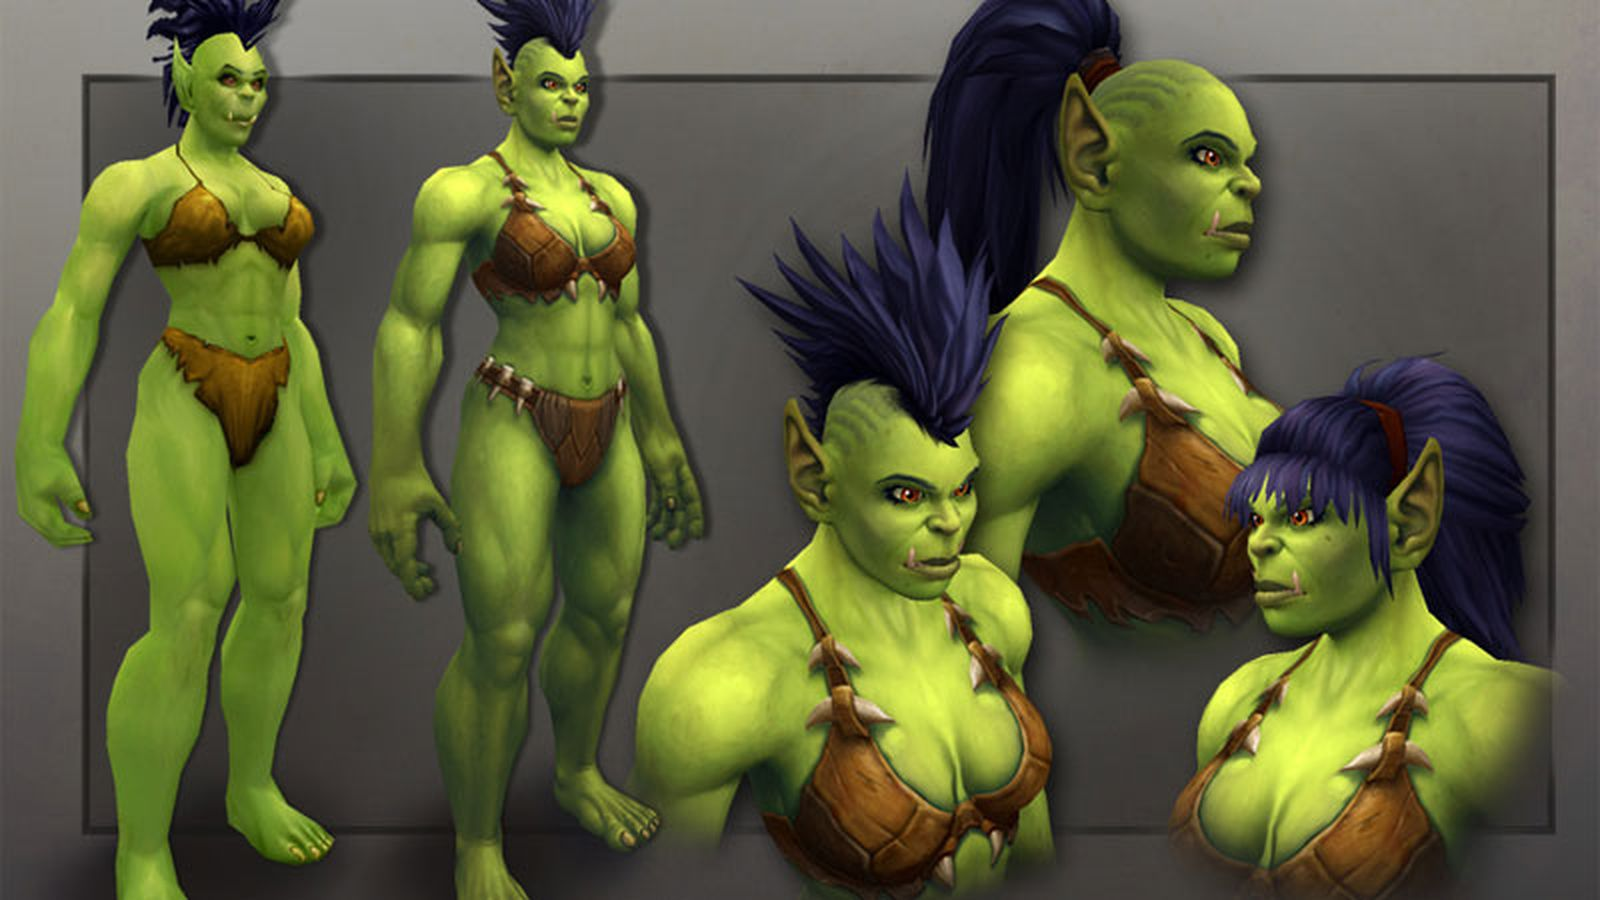 World of warcraft draenai and orc 3d  porncraft pic